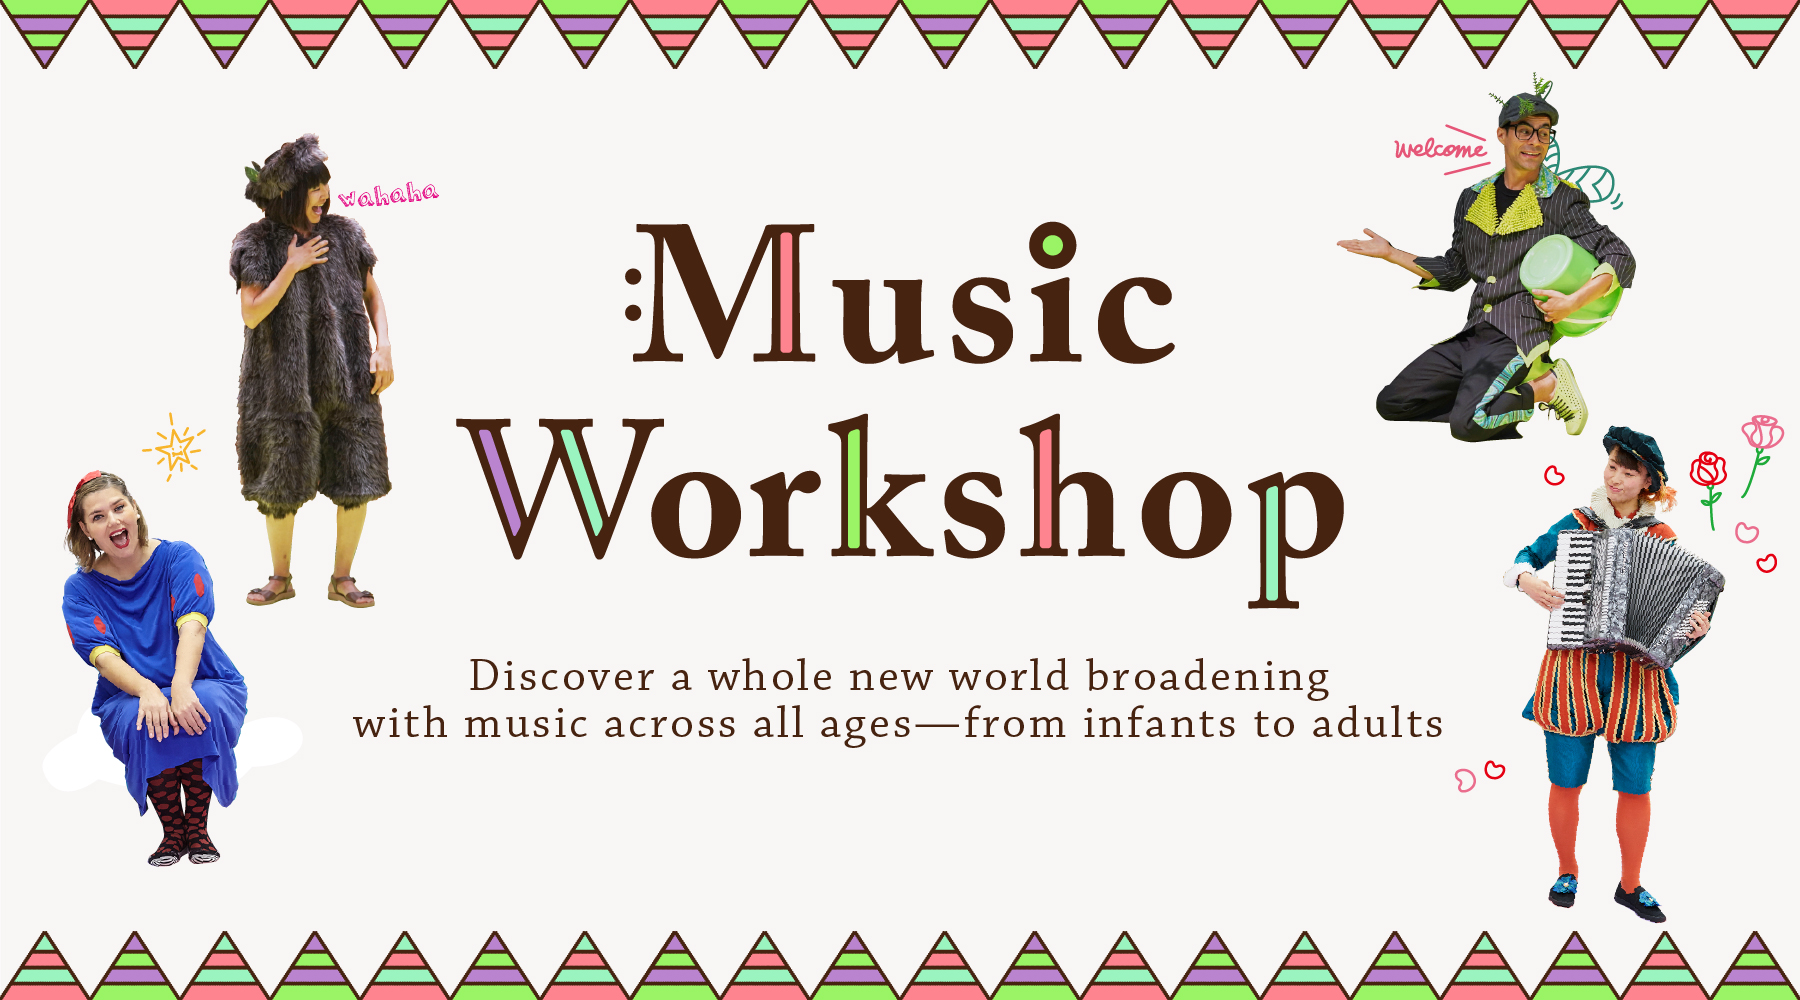 Music Workshop Discover a whole new world broadening with music across all ages—from infants to adults